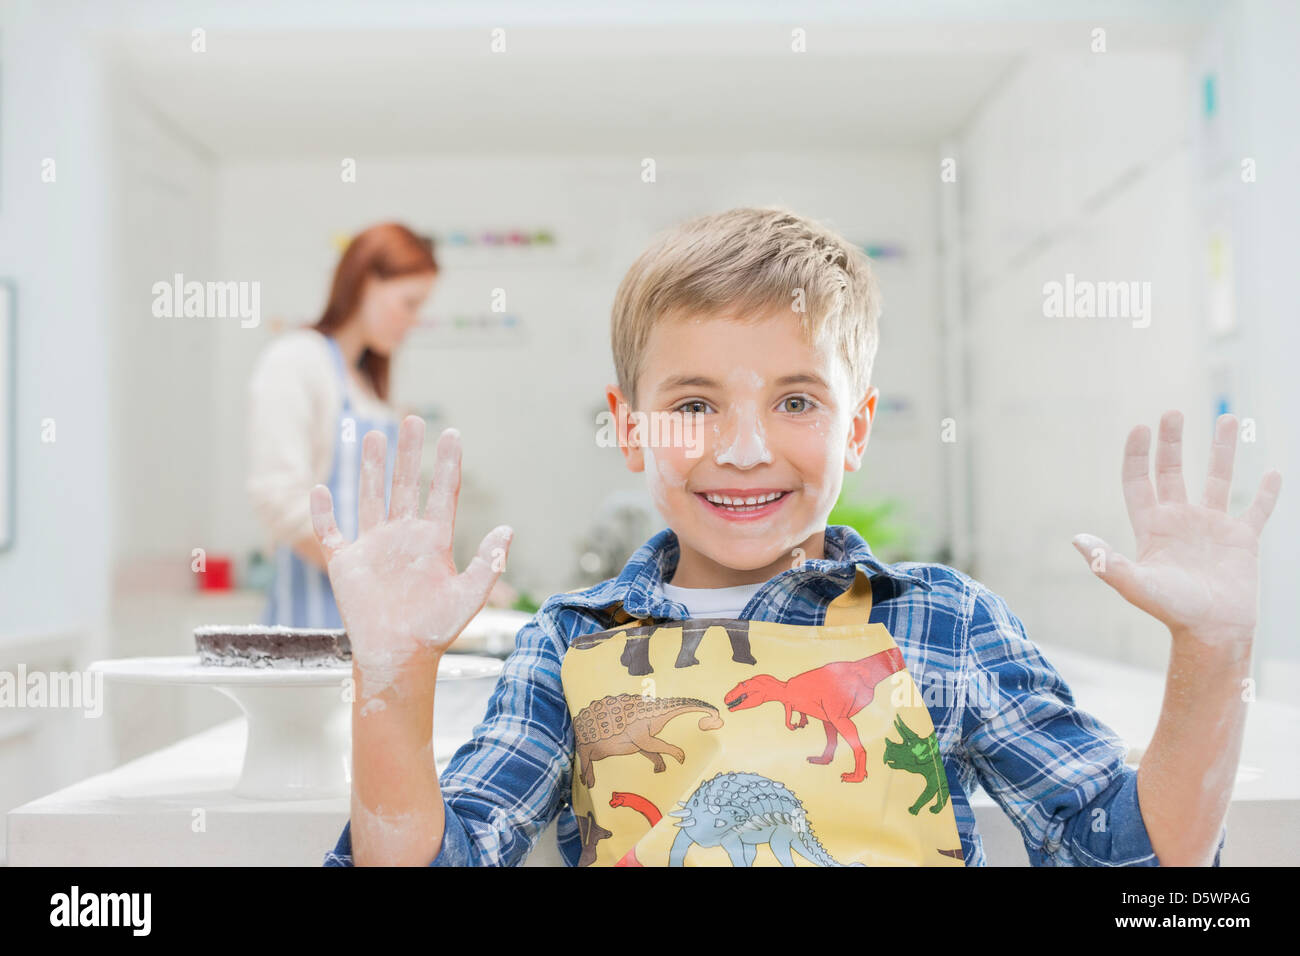 Boy covered in flour in kitchen - Stock Image